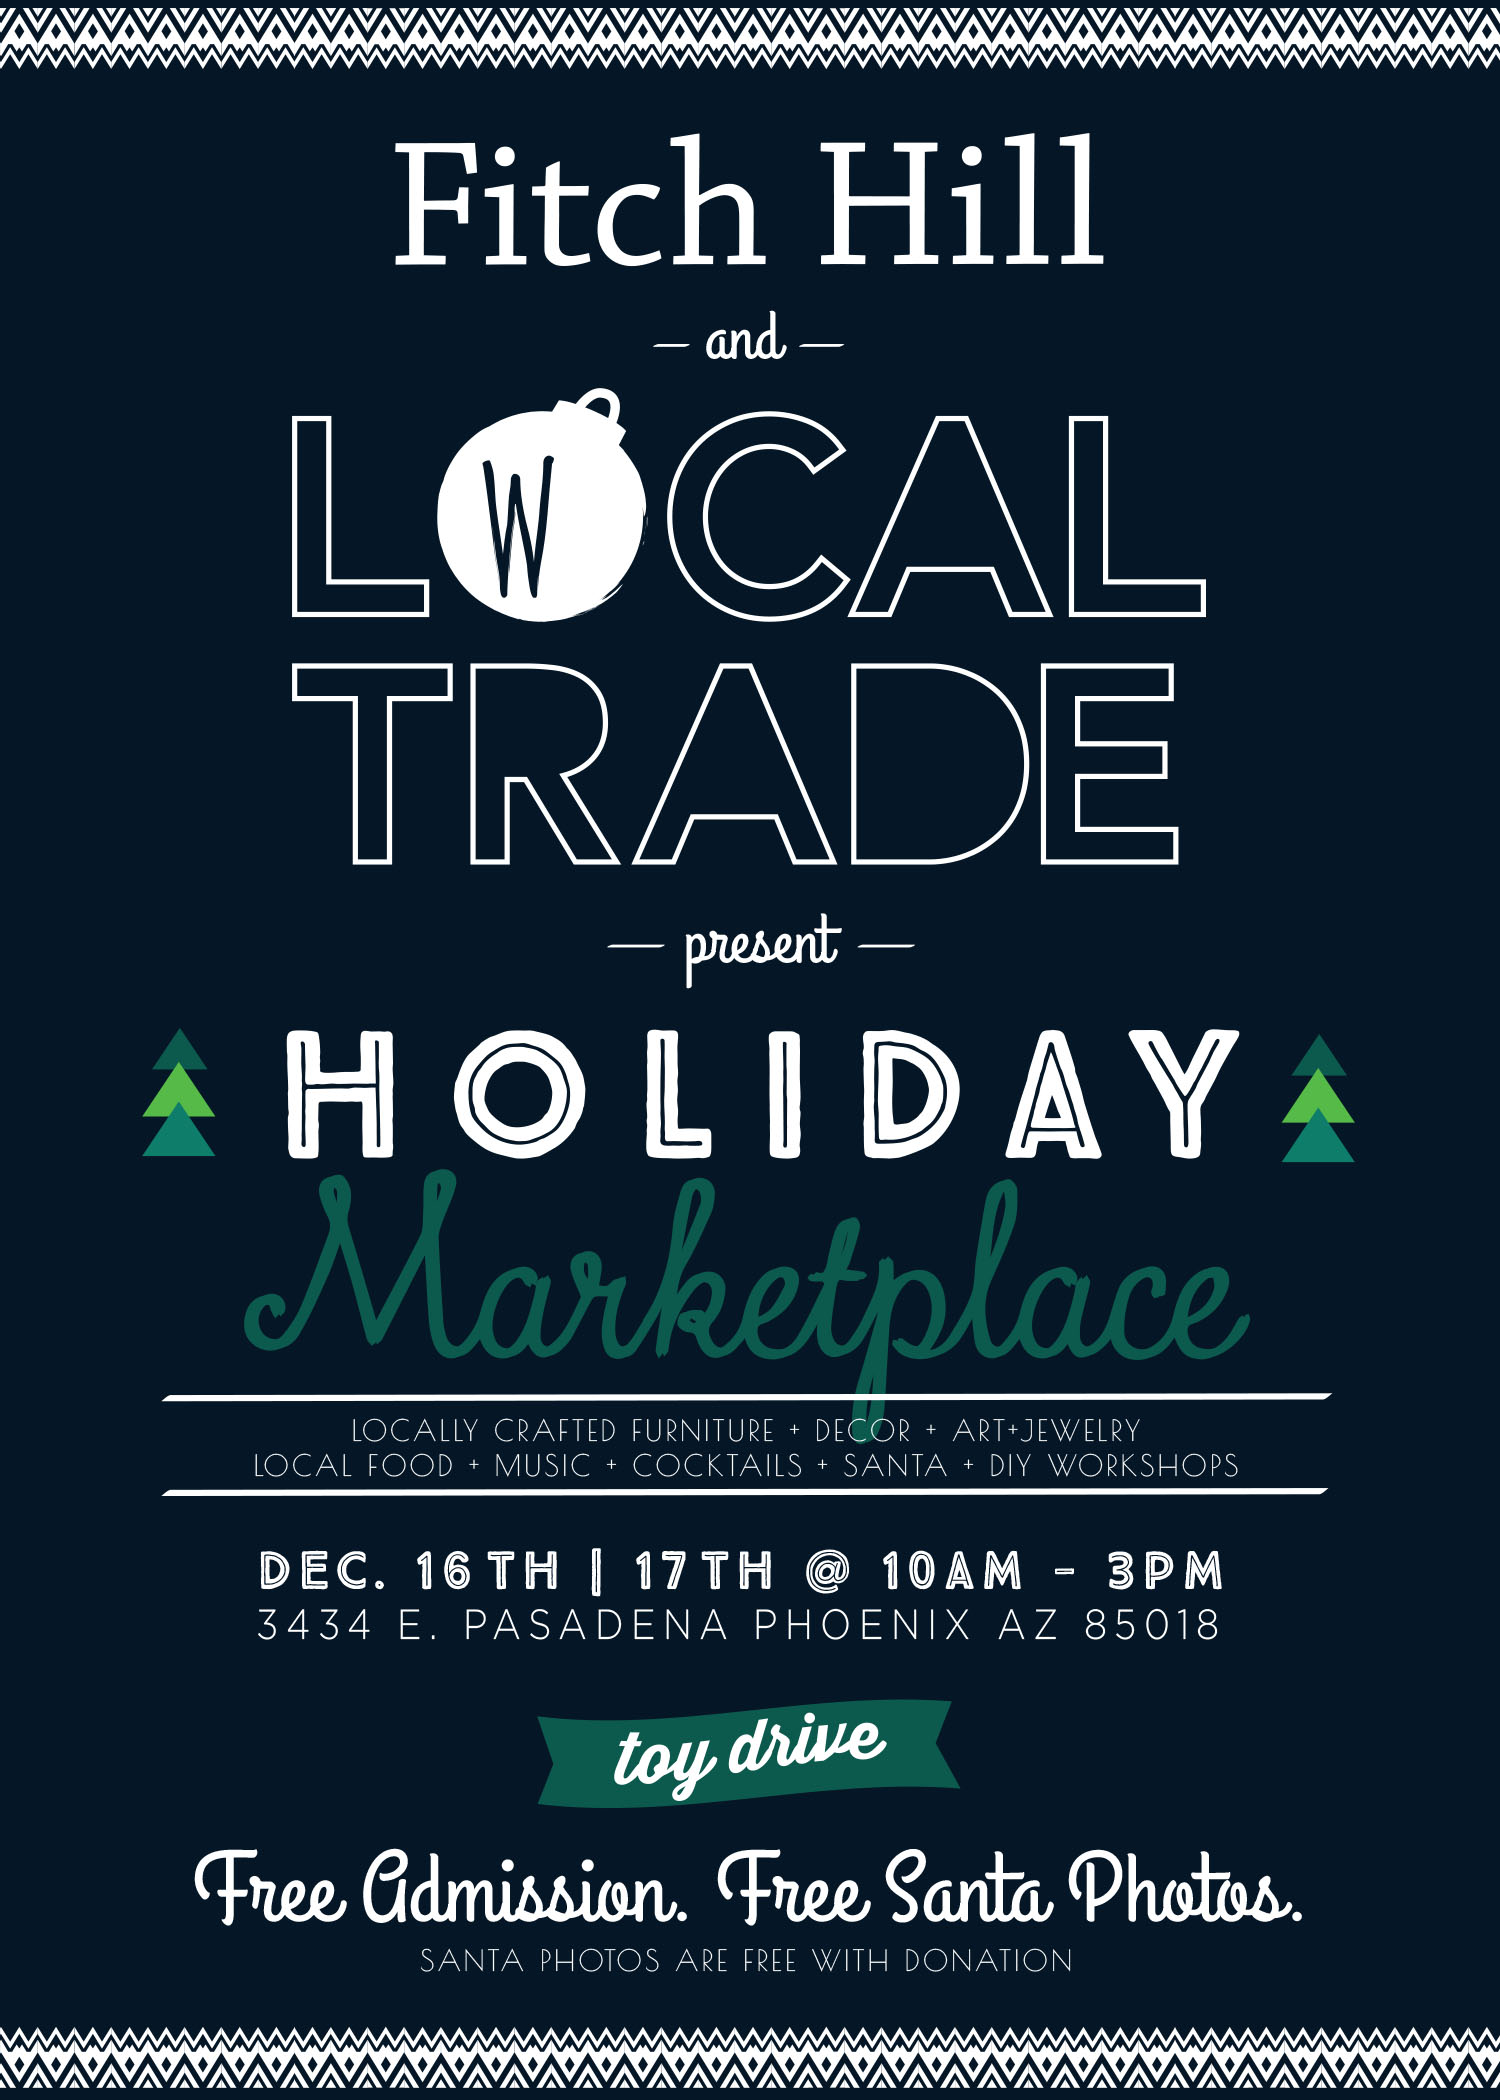 LT Holiday Market flyer.jpg